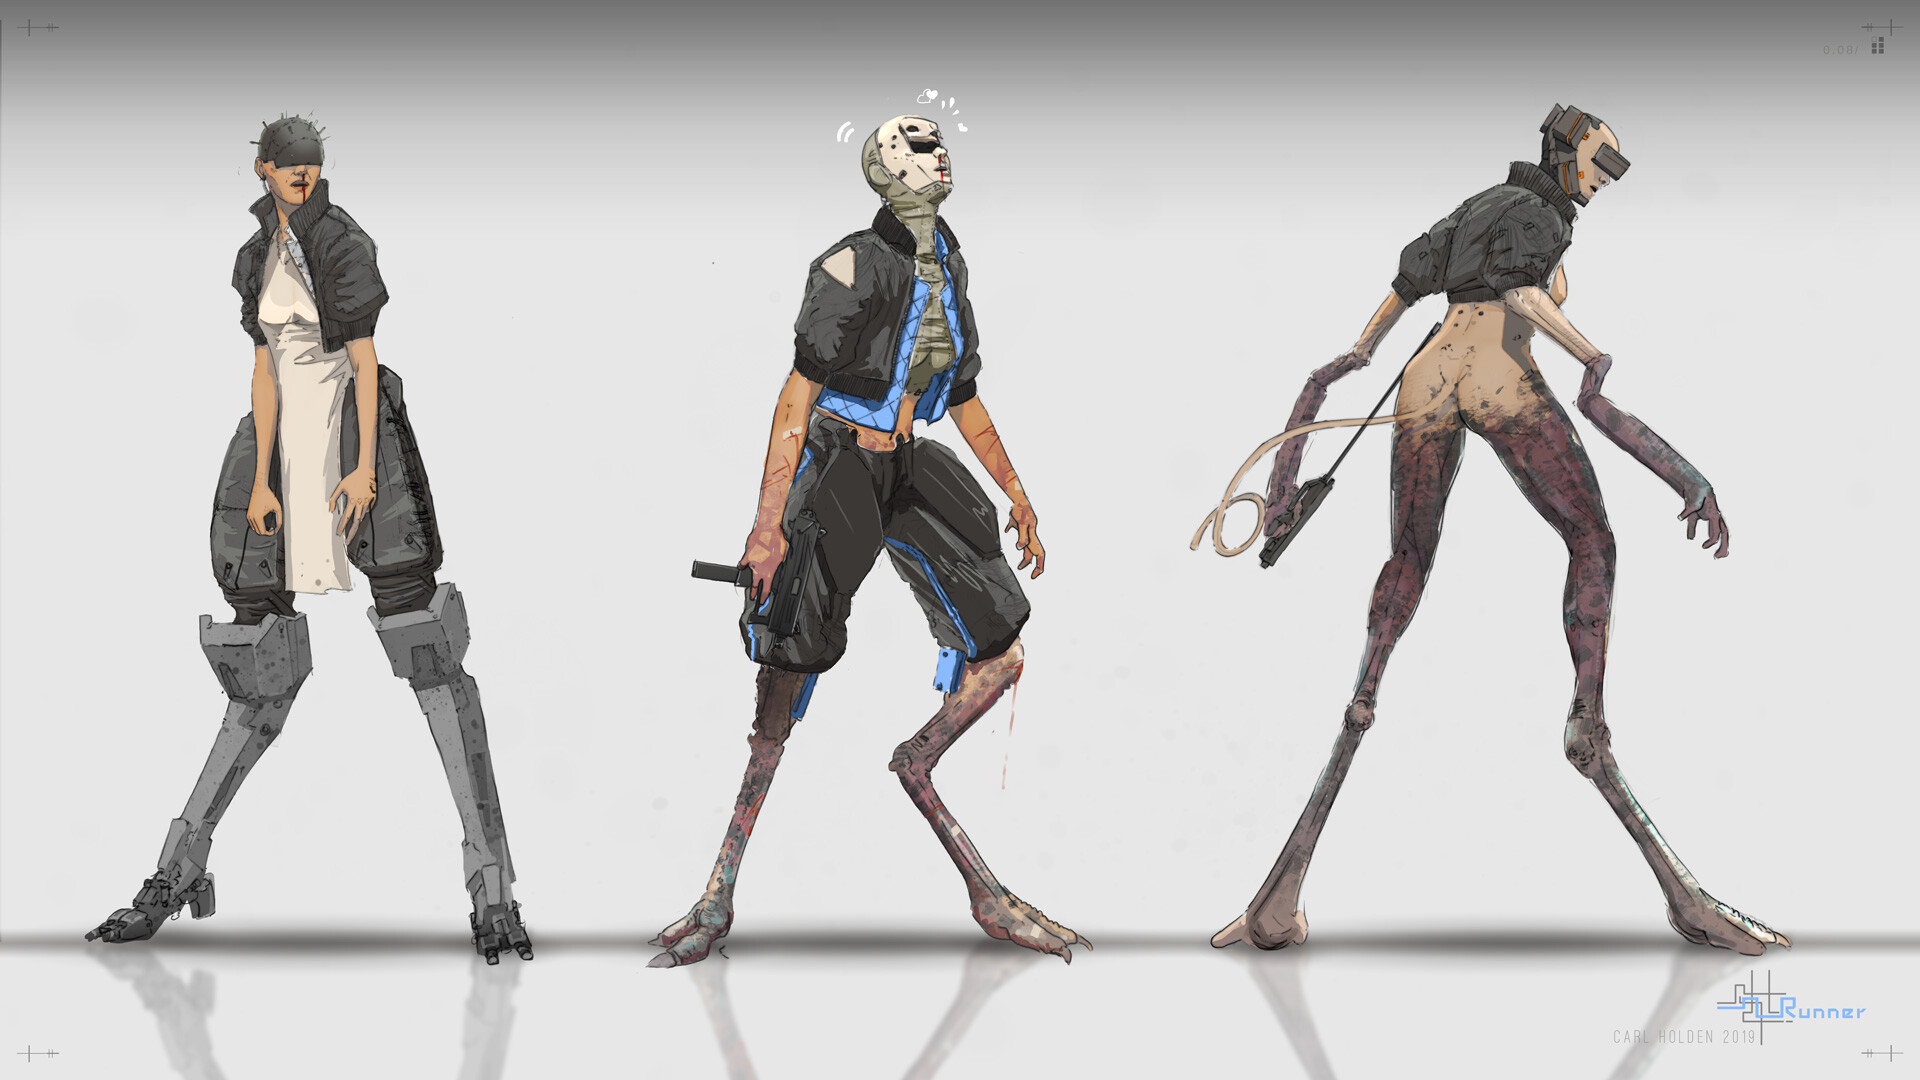 Carl holden 19 runner concepts